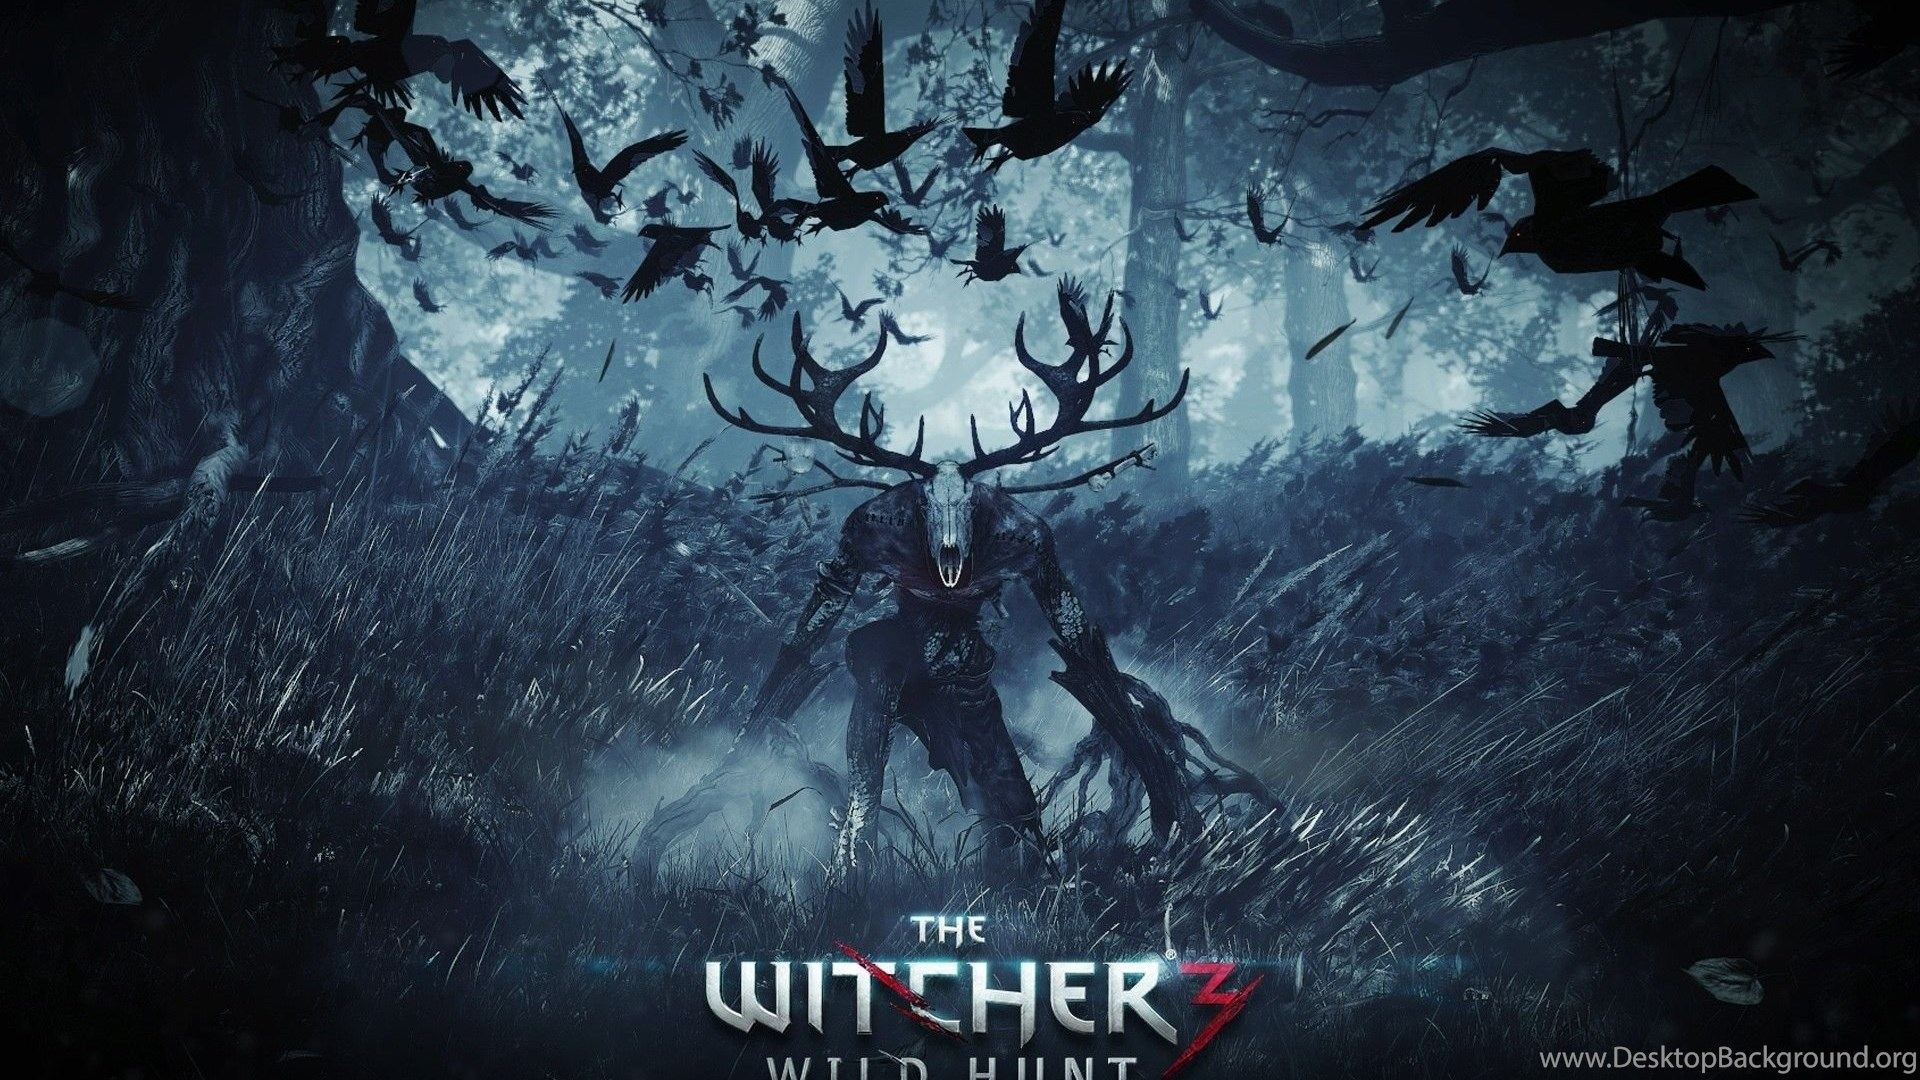 305 the witcher 3: wild hunt hd wallpapers desktop background